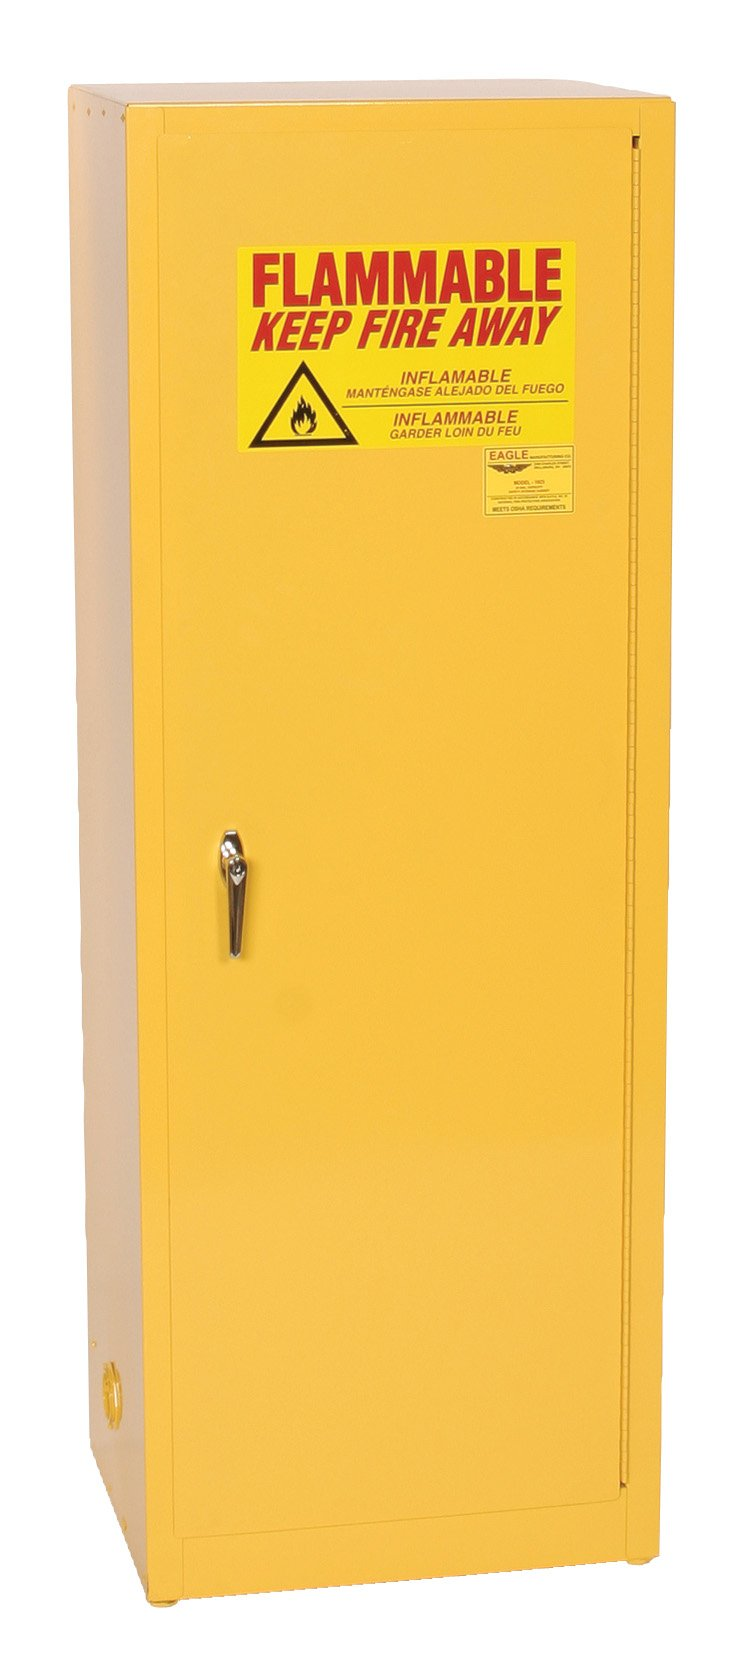 Eagle 2310 Safety Cabinet for Flammable Liquids, 1 Door Self Close, 24 gallon, 65''Height, 23''Width, 18''Depth, Steel, Yellow